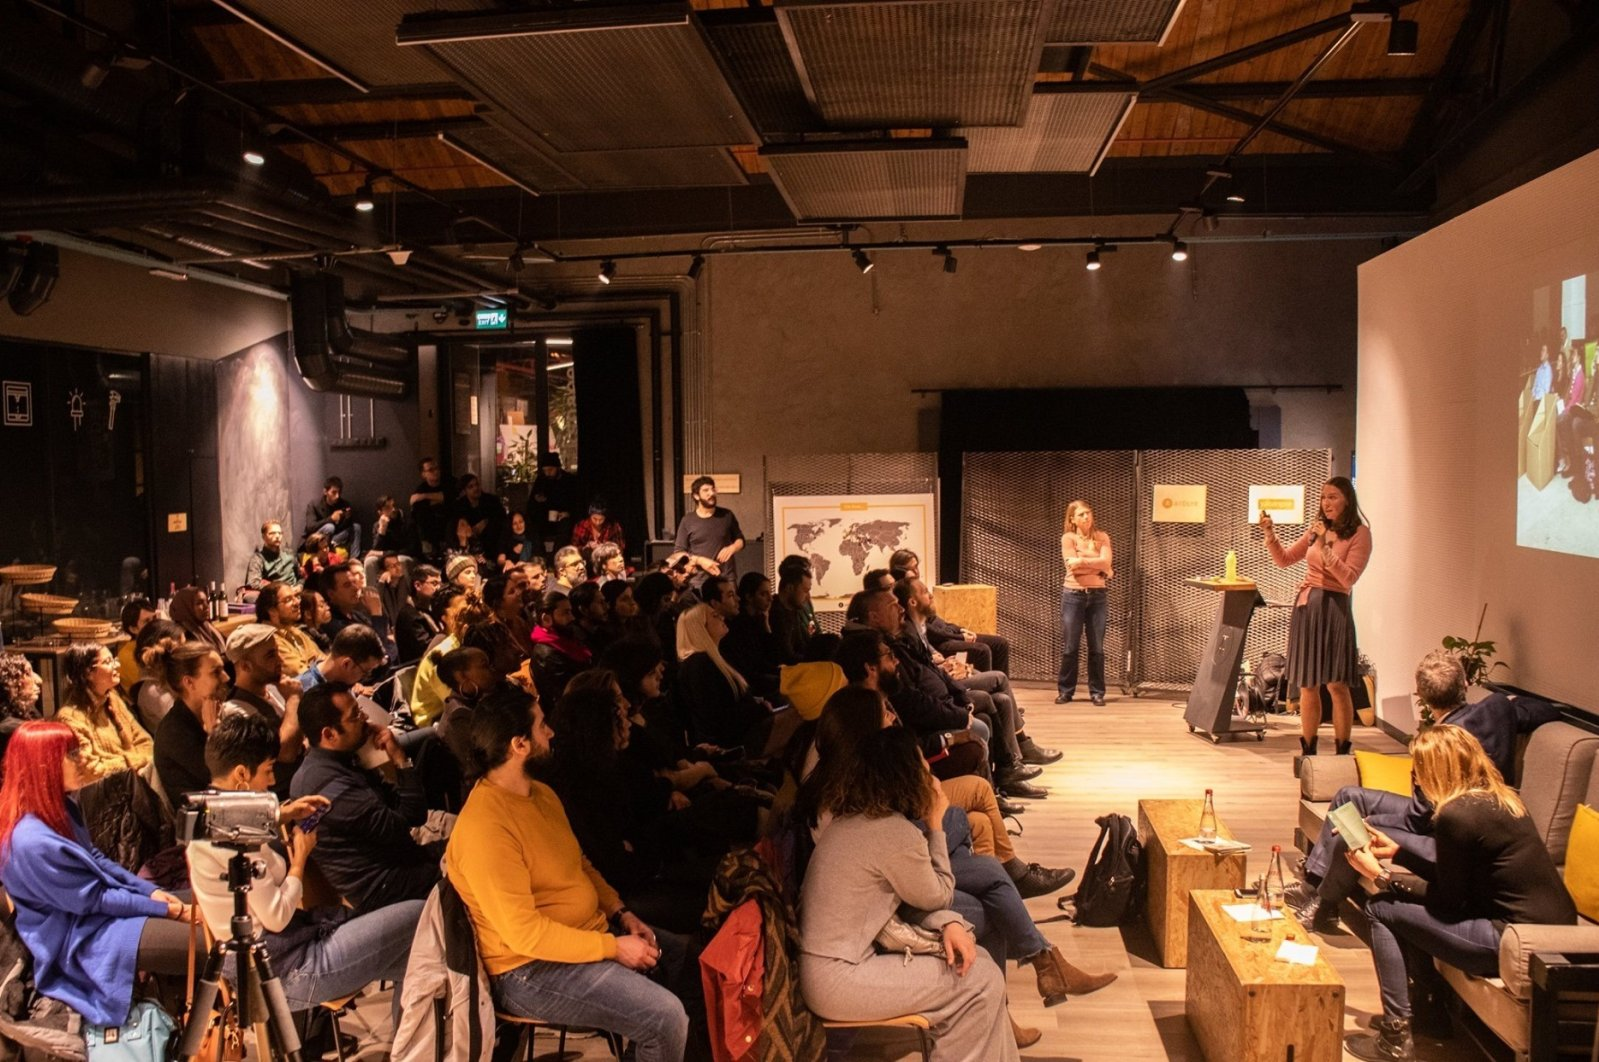 Expat Spotlight (pictured) is a talk series showcasing the contributions made by expats to the city's cultural, humanitarian or business fabric. (Photo courtesy of Yabangee)